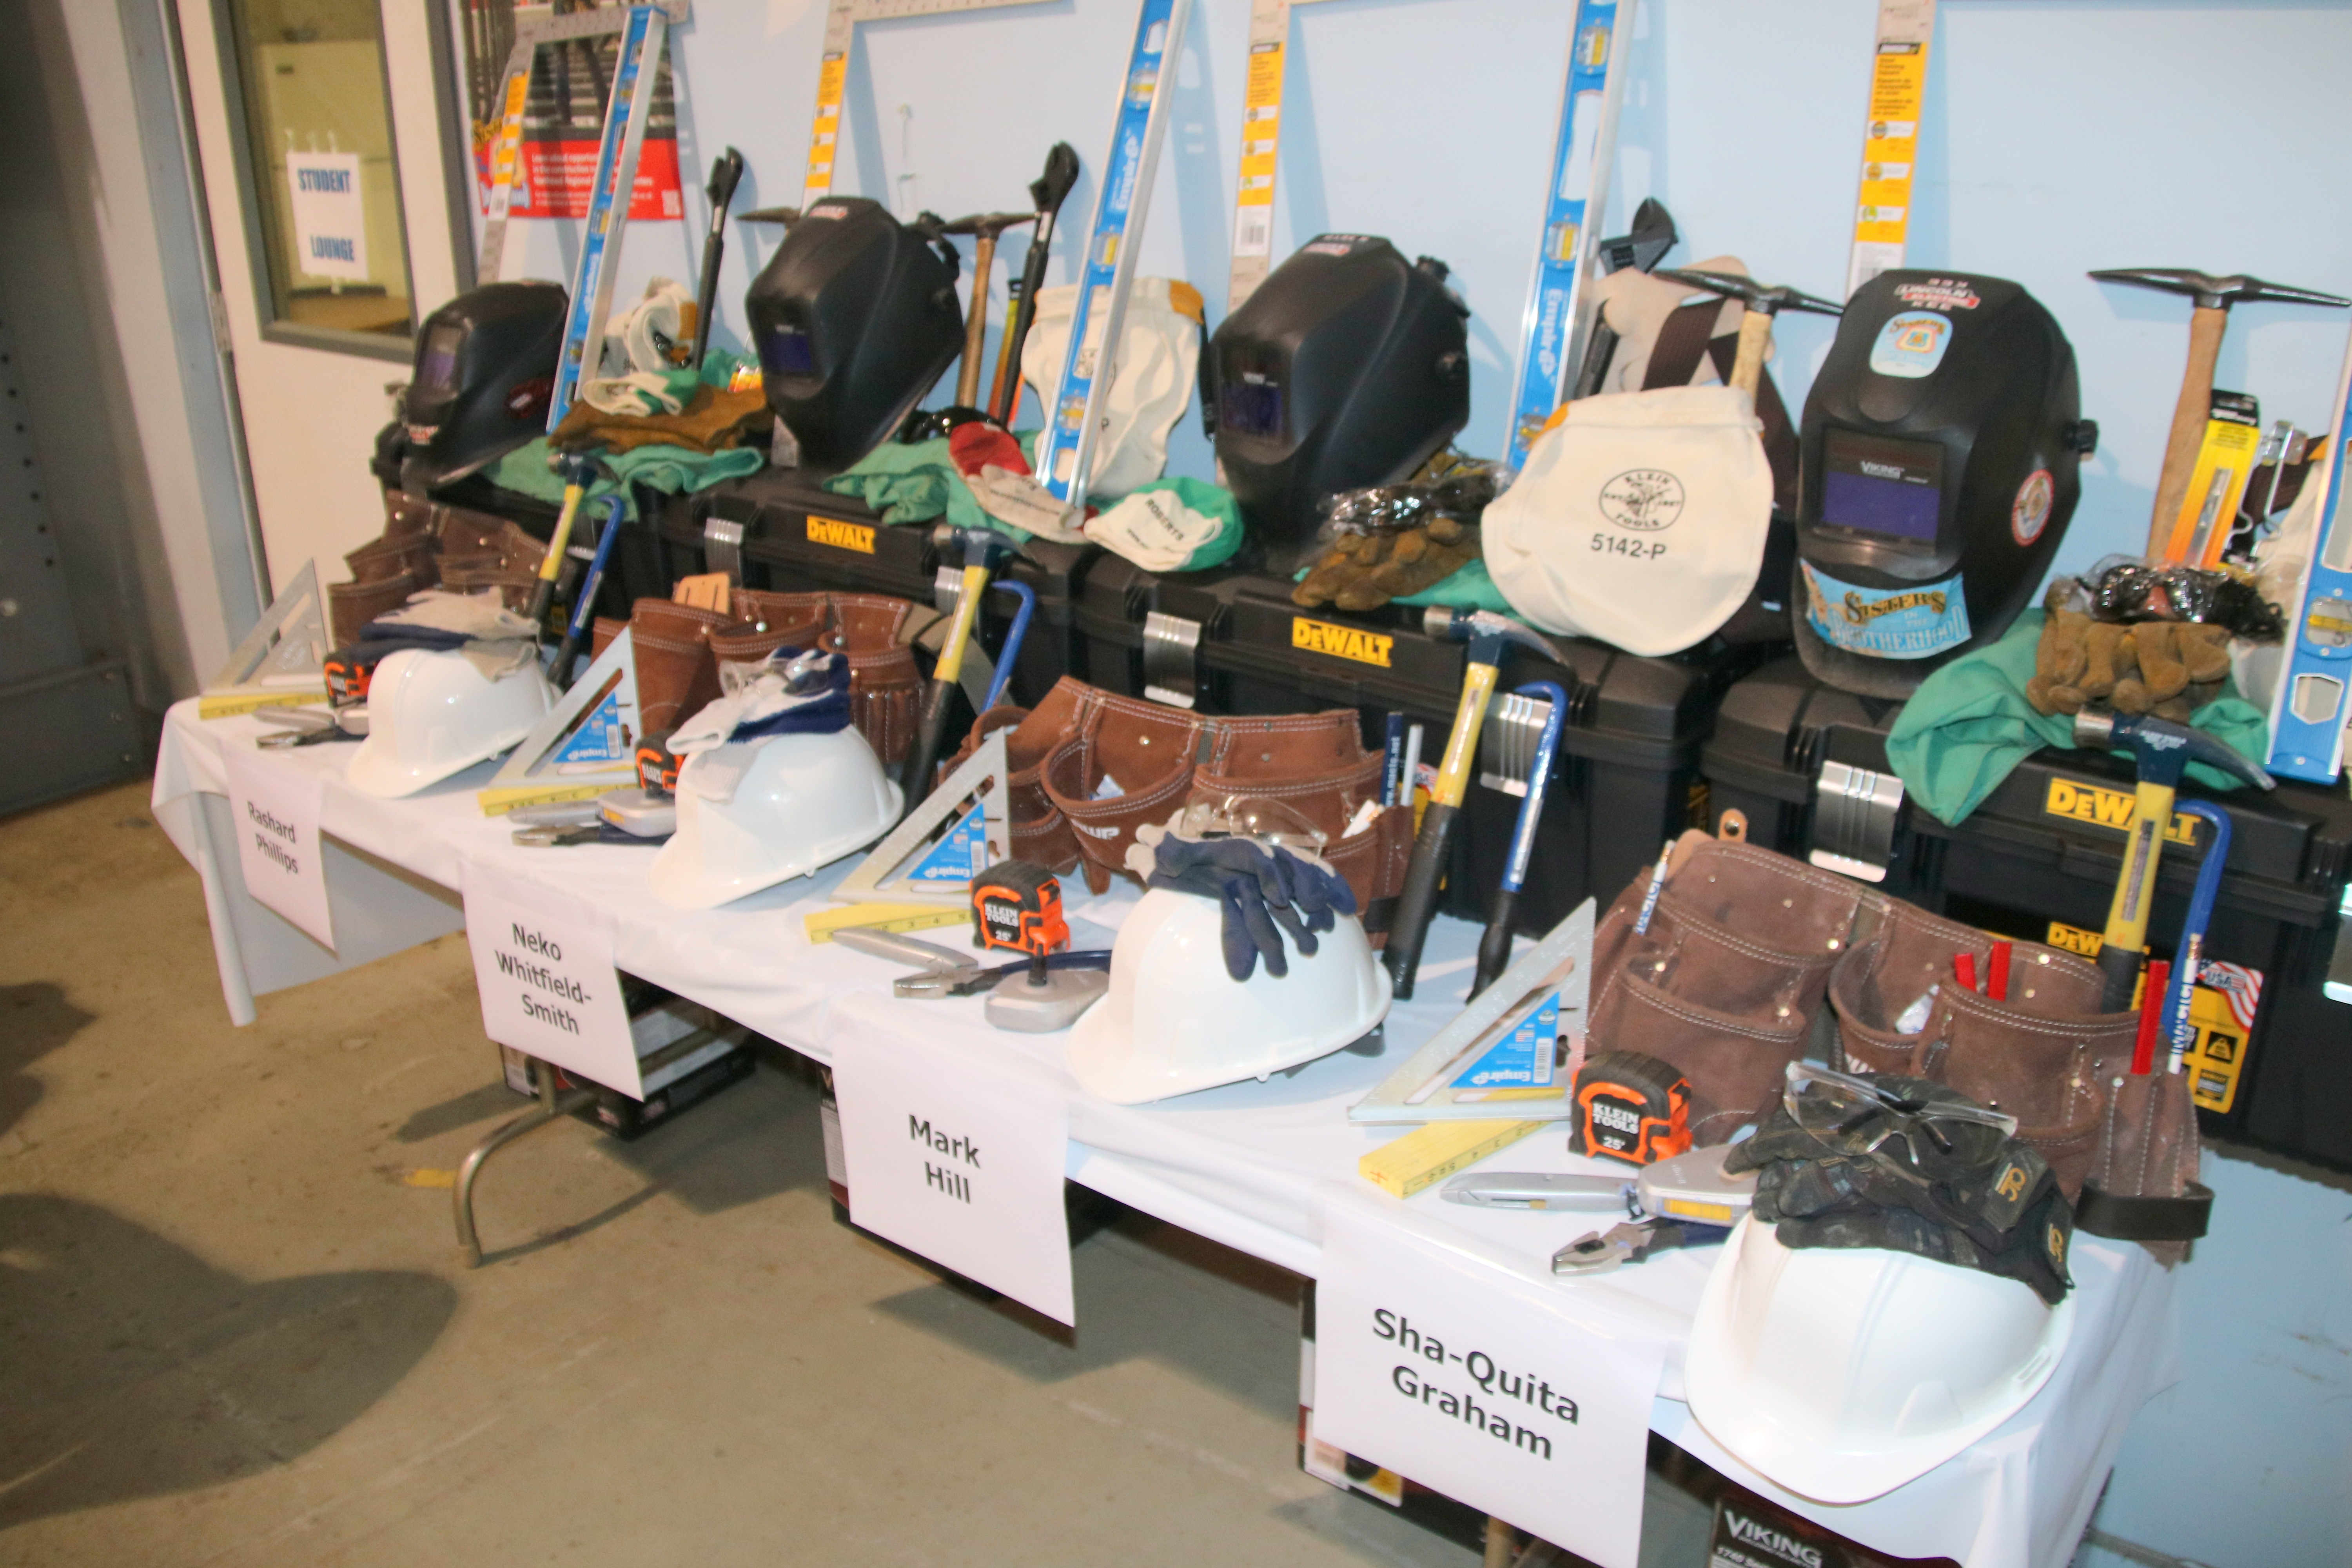 Tools of the trade lined up for graduates of the pre-apprenticeship program. (Louis Krauss)